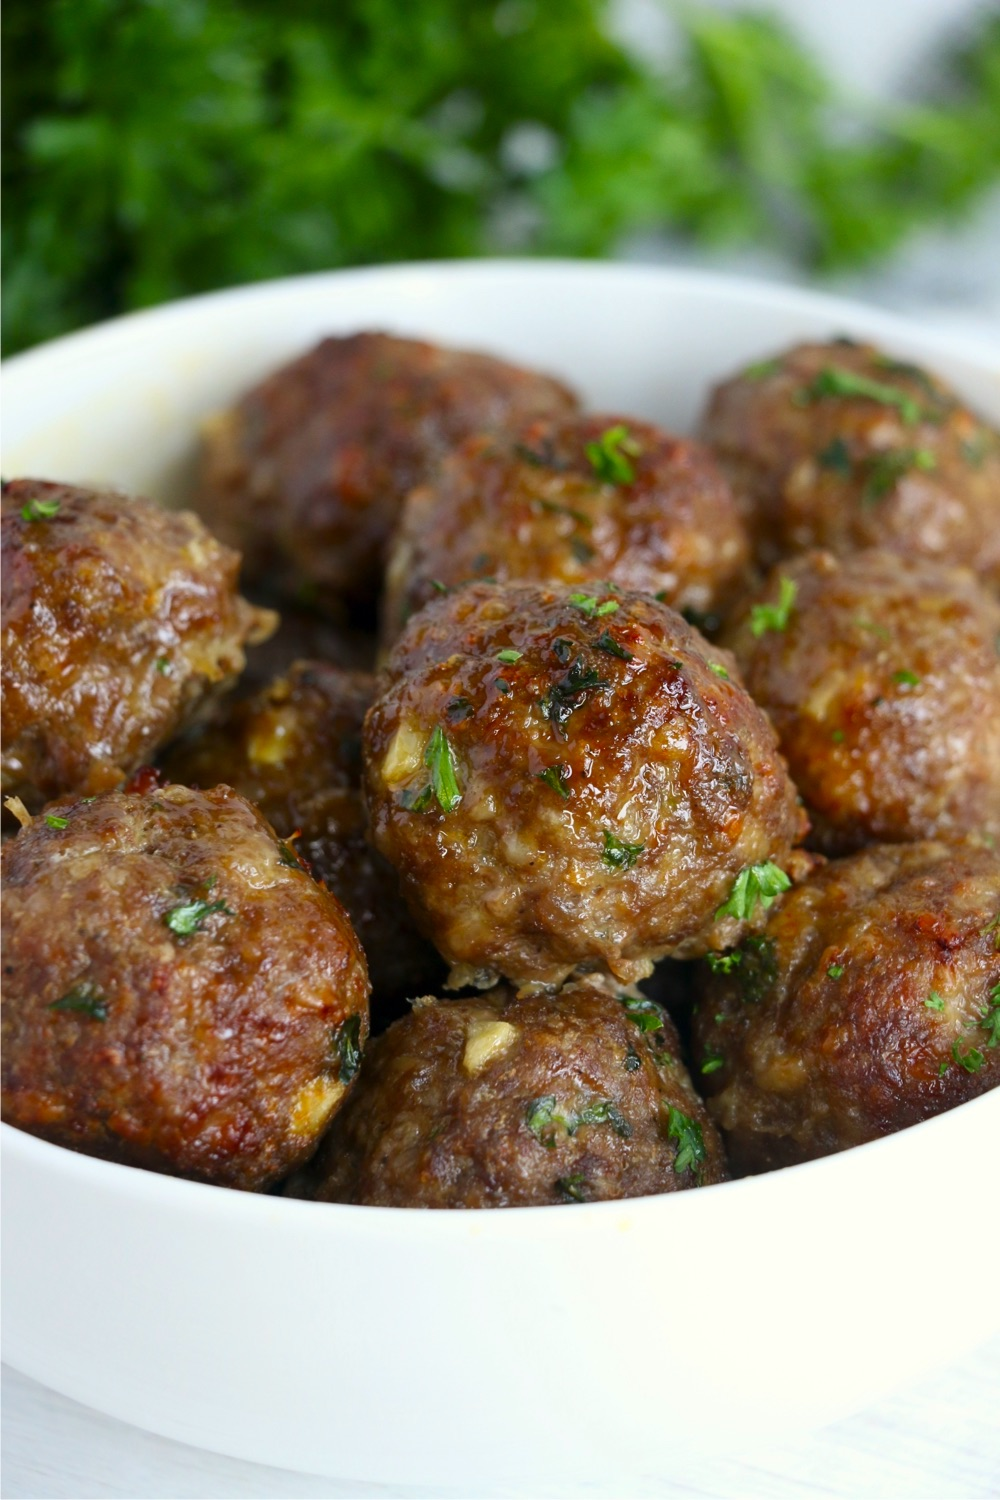 bowl of meatballs garnished with parsley